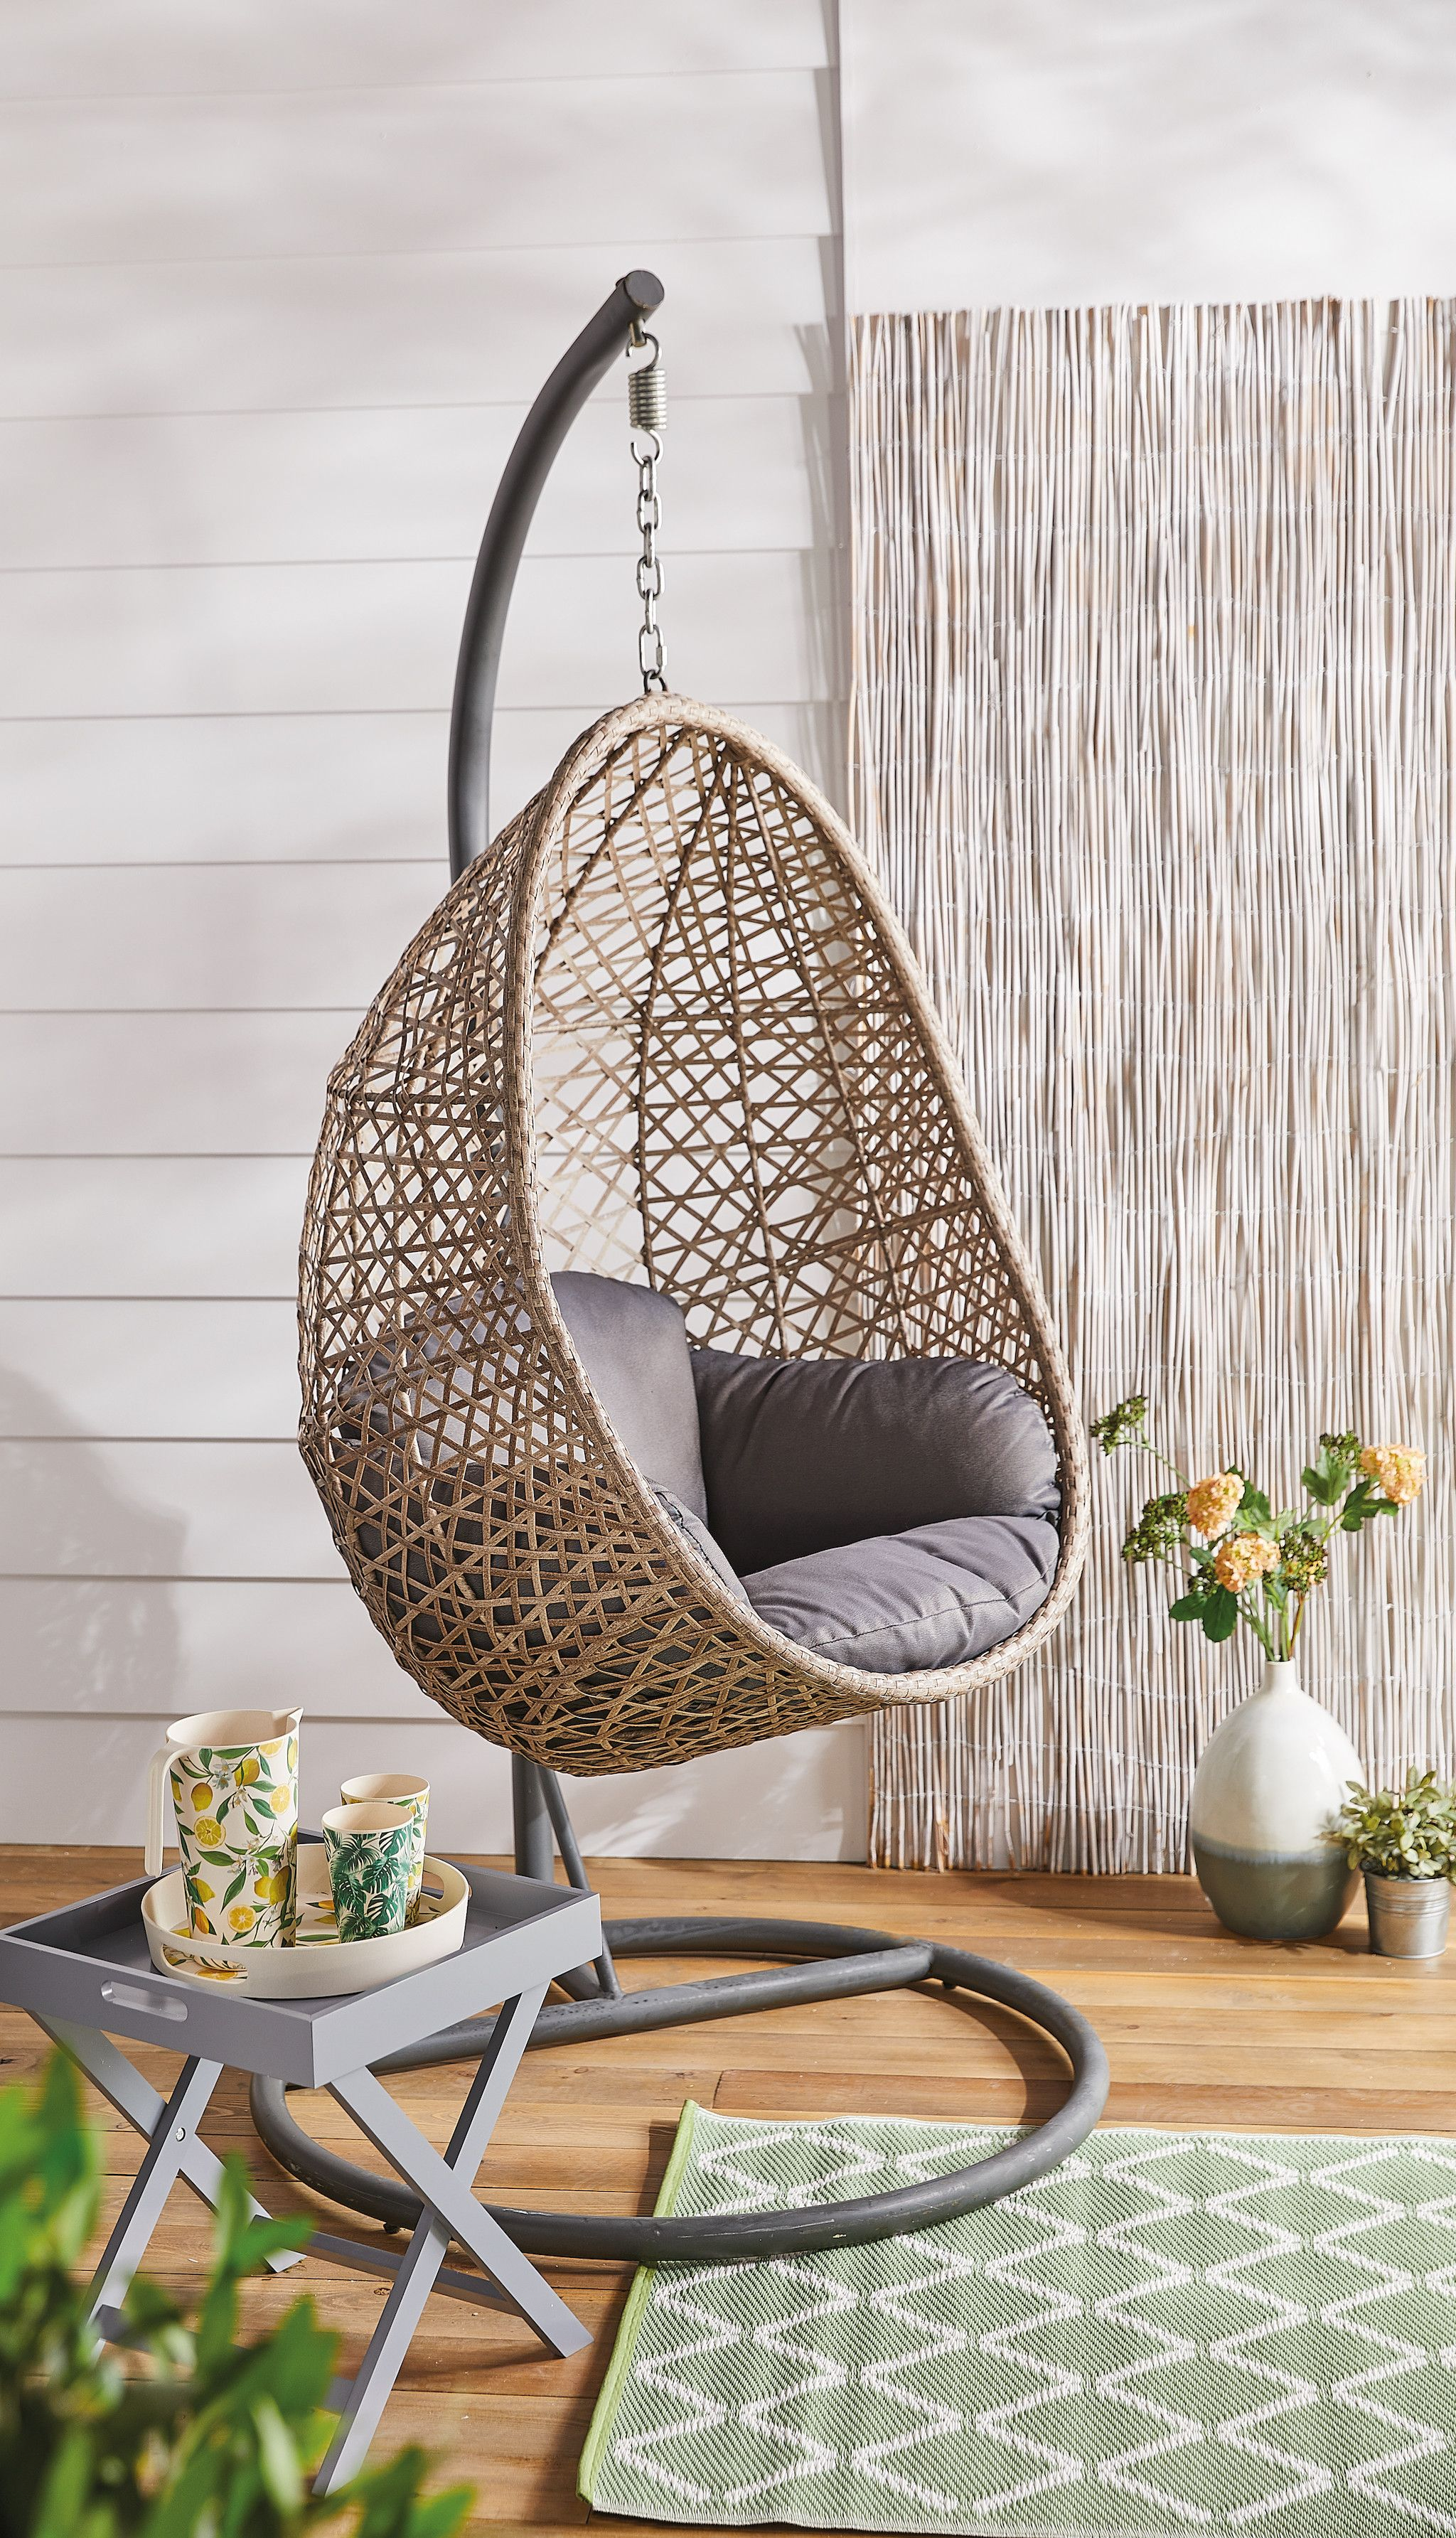 New Aldi Garden Furniture Includes Fire Pit And Hanging Egg Chair